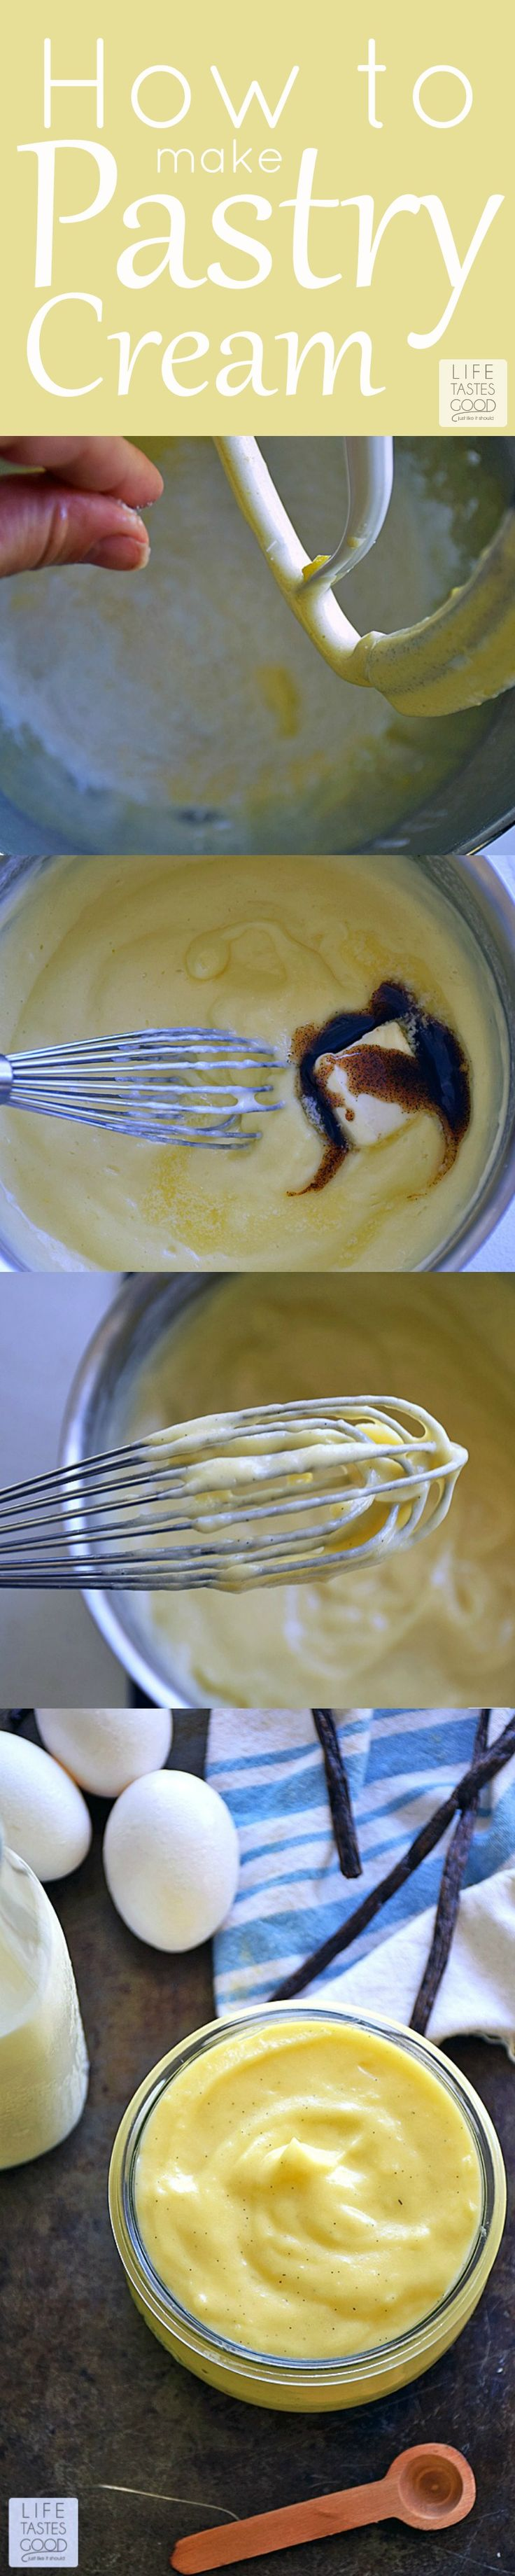 Pastry Cream is a silky, sweet French custard that is quite easy to make. Today I'll walk you through my tutorial on How To Make Pastry Cream | by Life Tastes Good that can be used in many different dessert recipes.